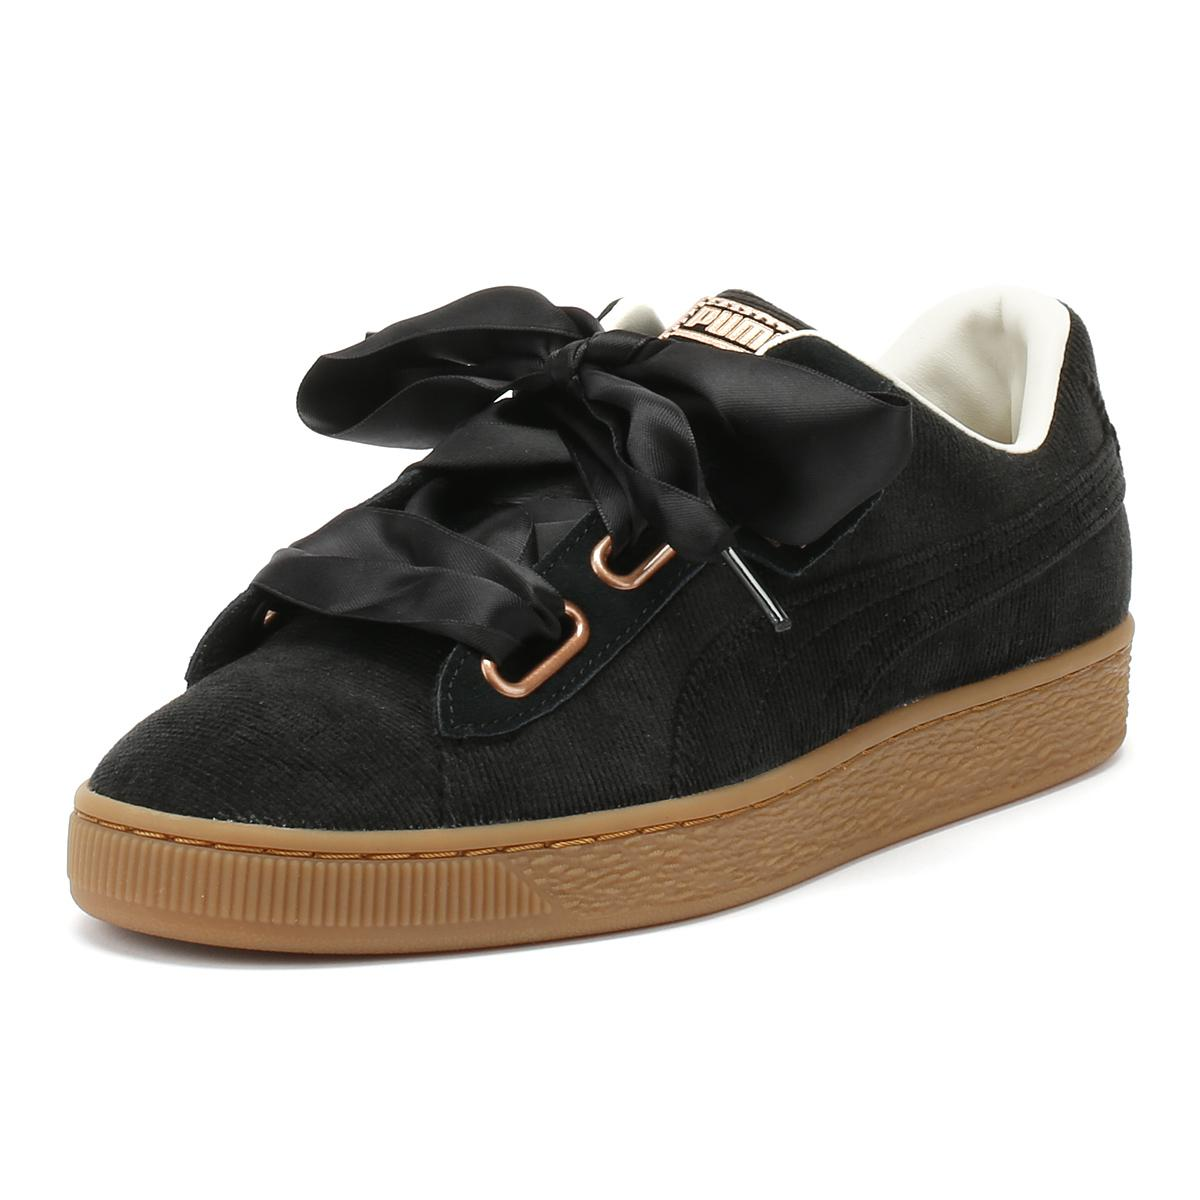 b4bc36904f05 PUMA - Womens Black Corduroy Basket Heart Trainers - Lyst. View fullscreen